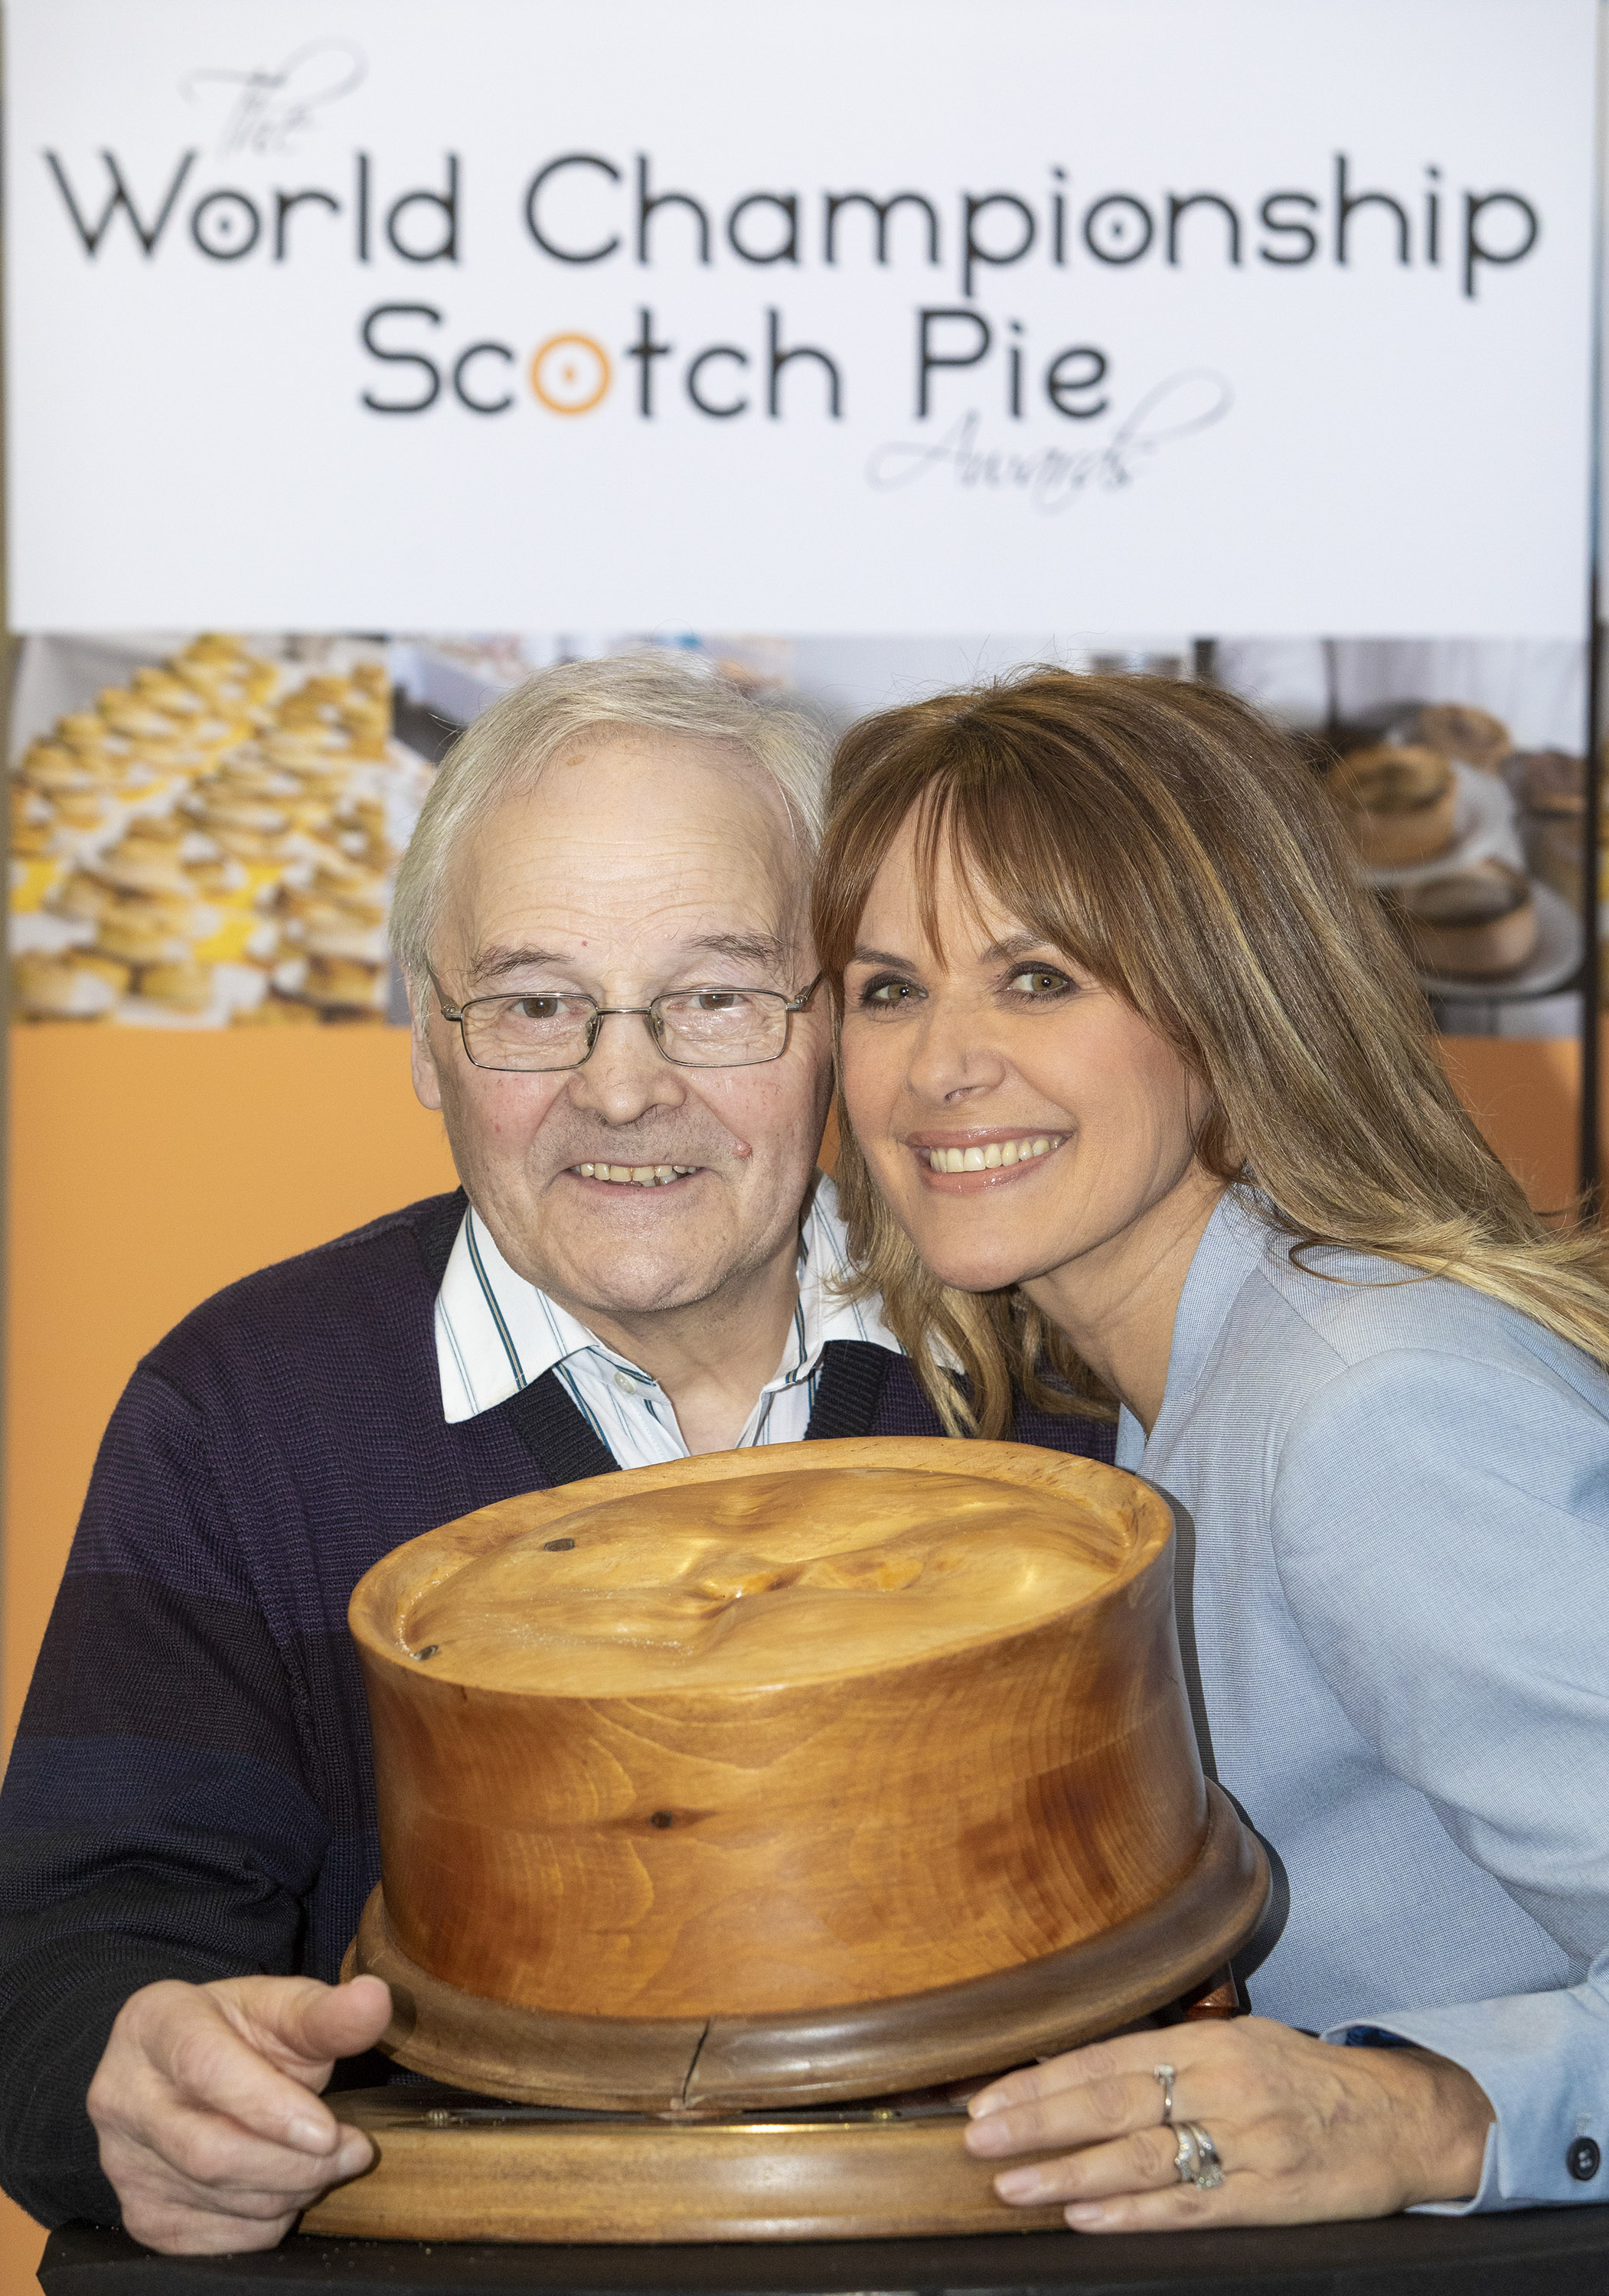 Kerr Little of The Little Bakery of Dumfries is announced as the 20th winner of the competition making them THE WORLD SCOTCH PIE CHAMPION OF 2019. Jan 15 2019